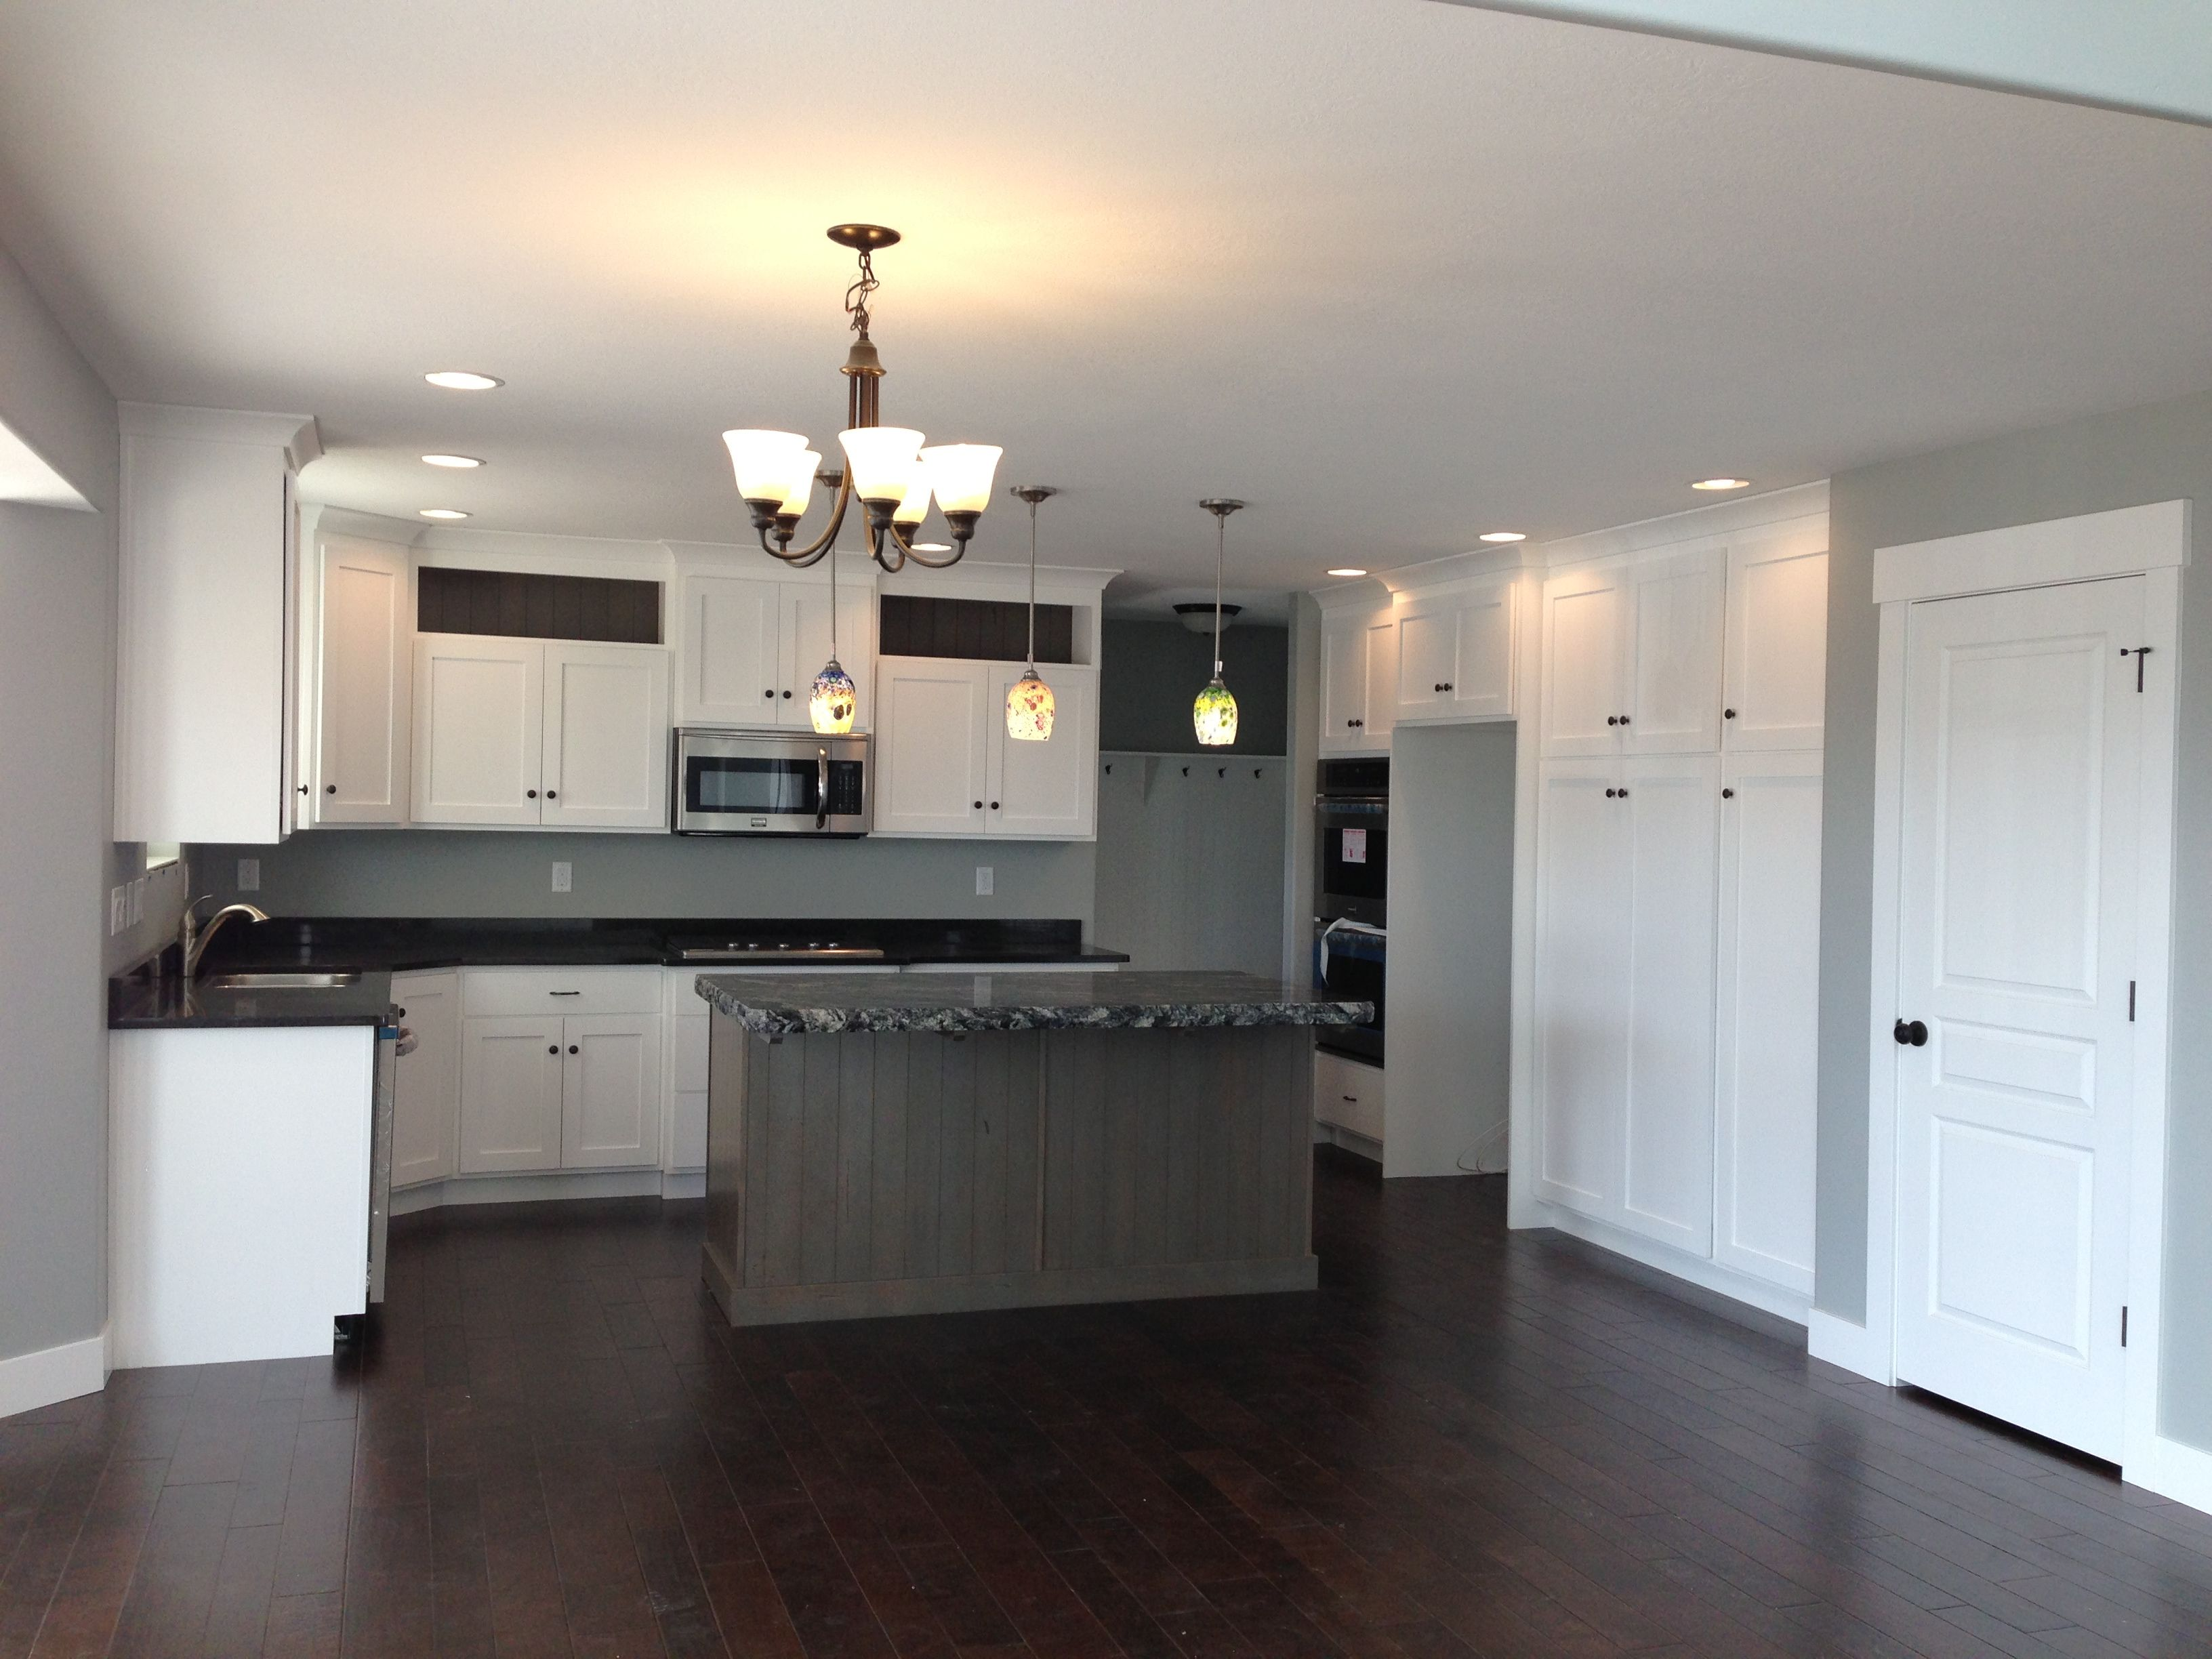 I Love The Dark Wood Floors With White Cabinets Not A Fan Of The Grey Island Though I Would Have L Elegant Kitchen Design Flat Interior Design White Cabinets